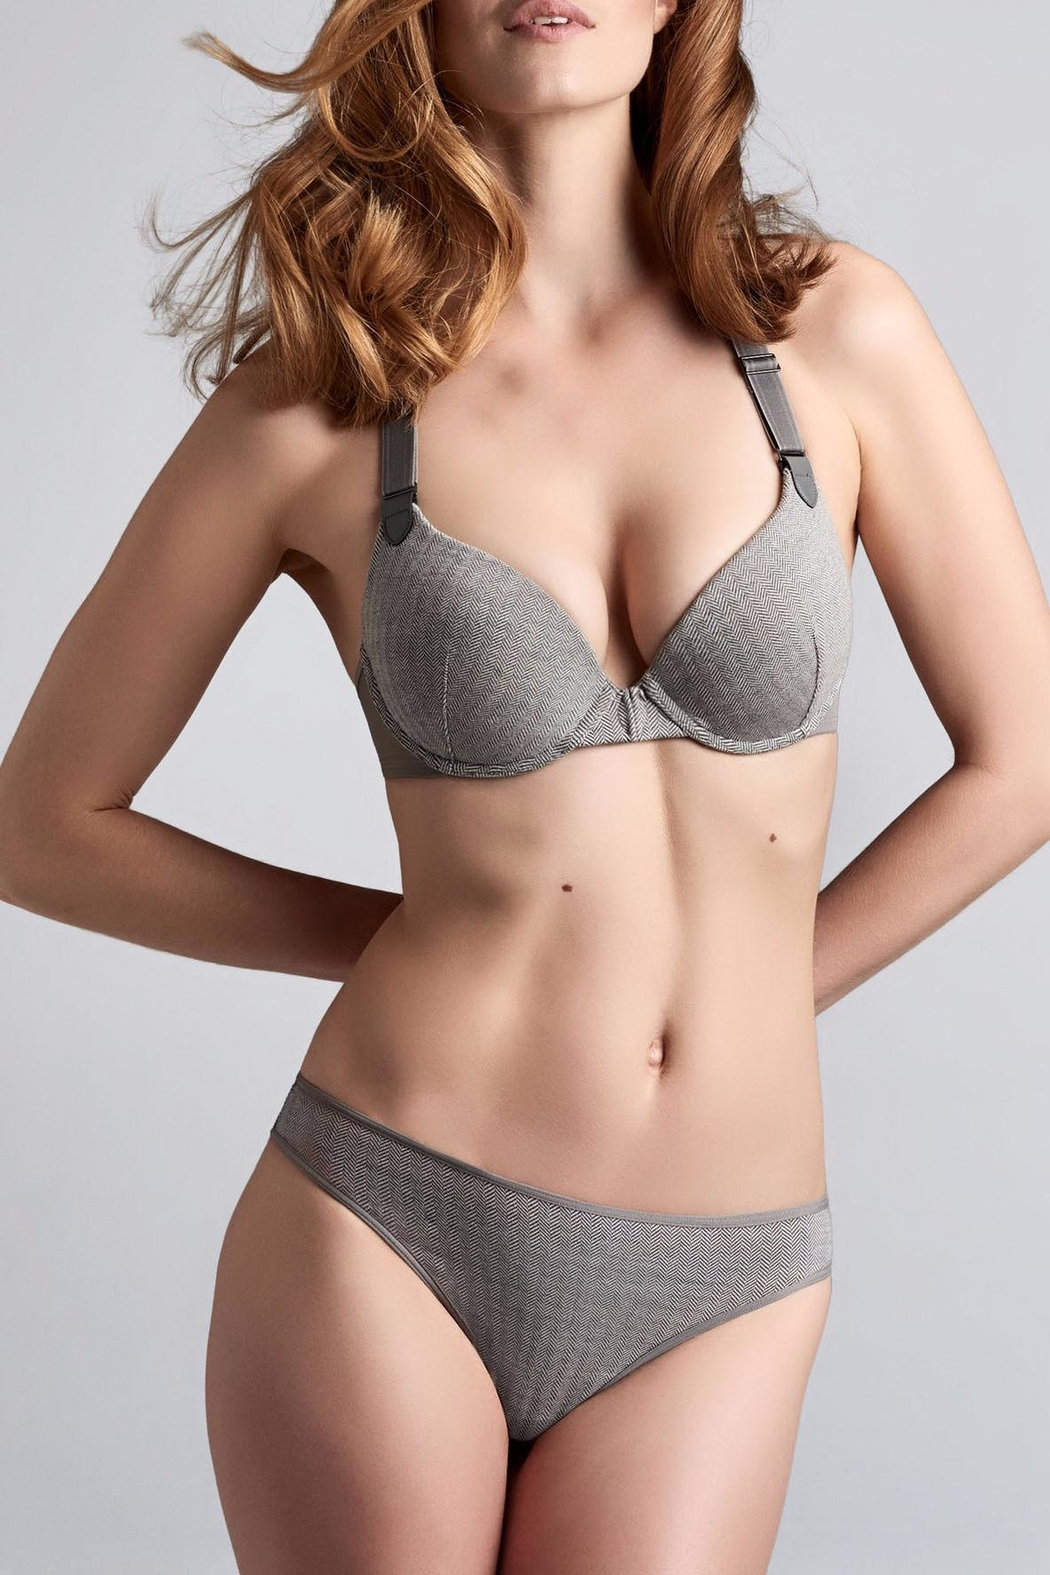 marlies dekkers Herringbone Cotton Thong - Main Image